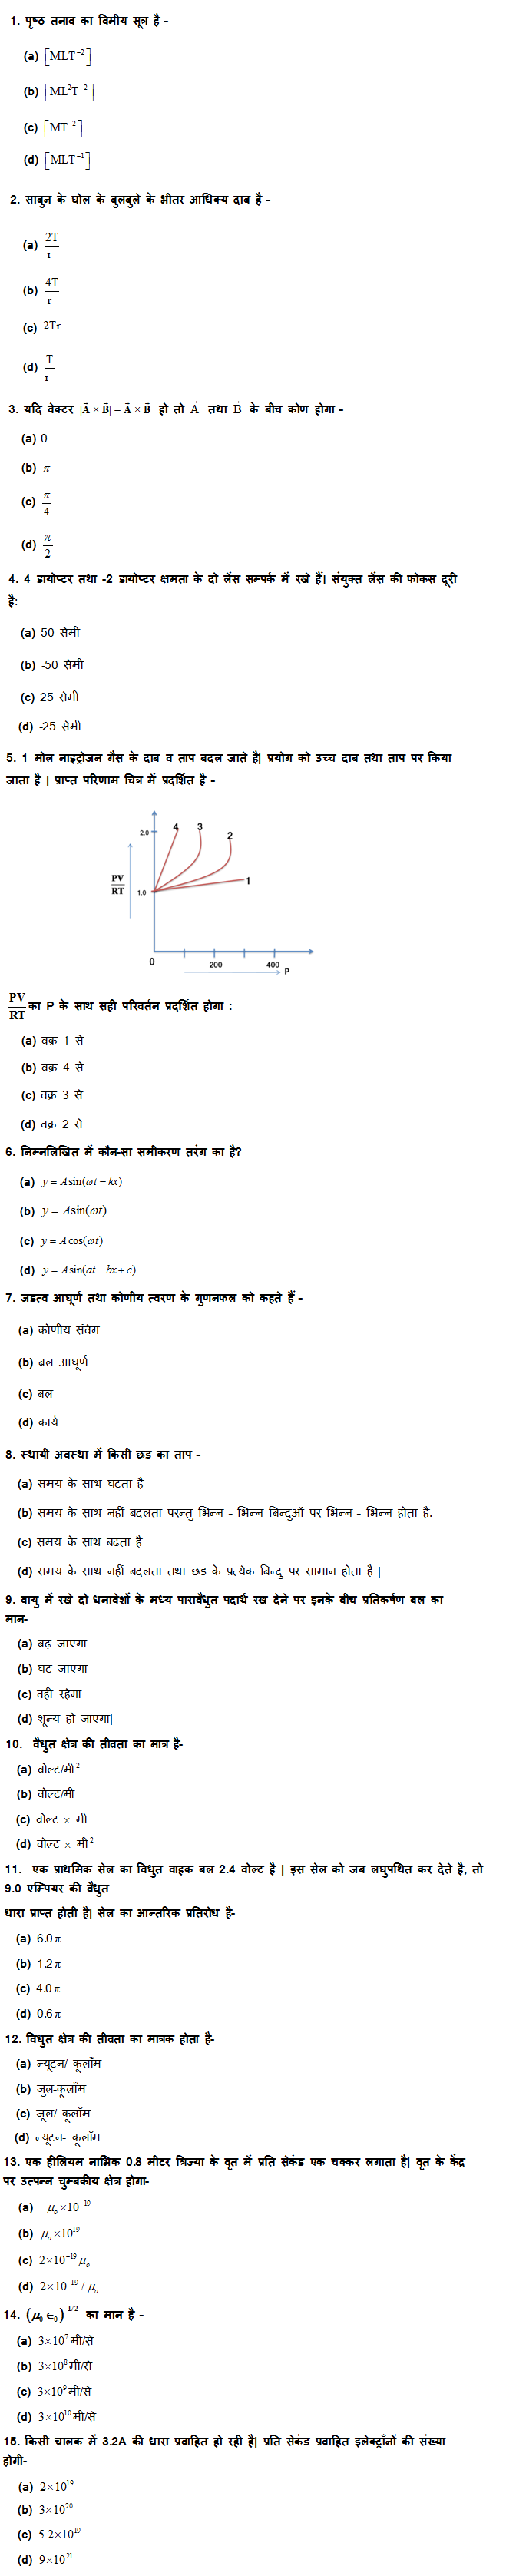 UP Board Class 12th Physics MCQ Test Set: 1 8